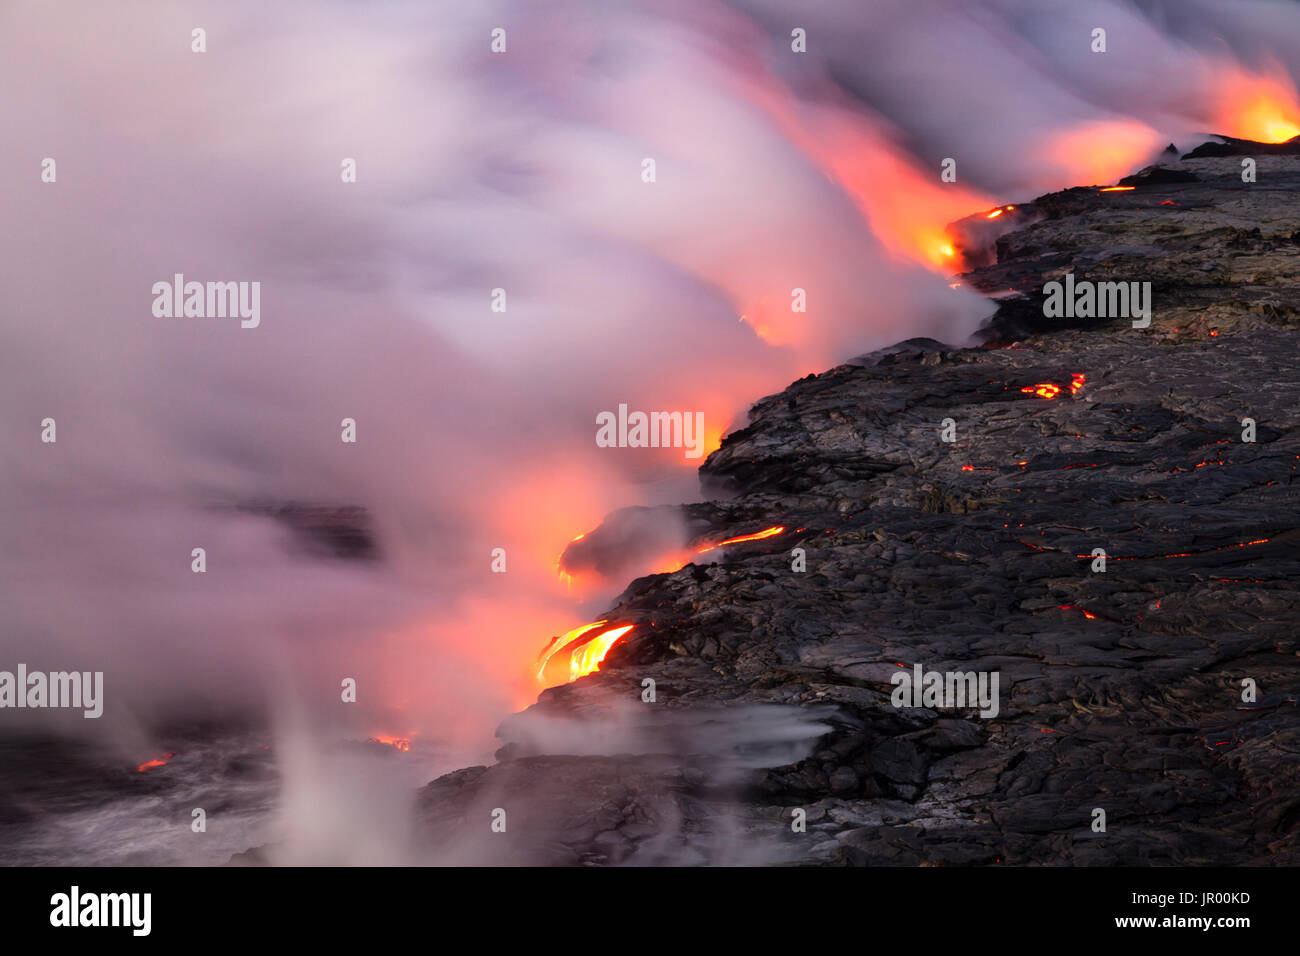 HI00341-00...HAWAI'I - Lava flowing into the Pacific Ocean from the East Riff Zoneof the Kilauea Volcano on the Island of Hawai'i. - Stock Image